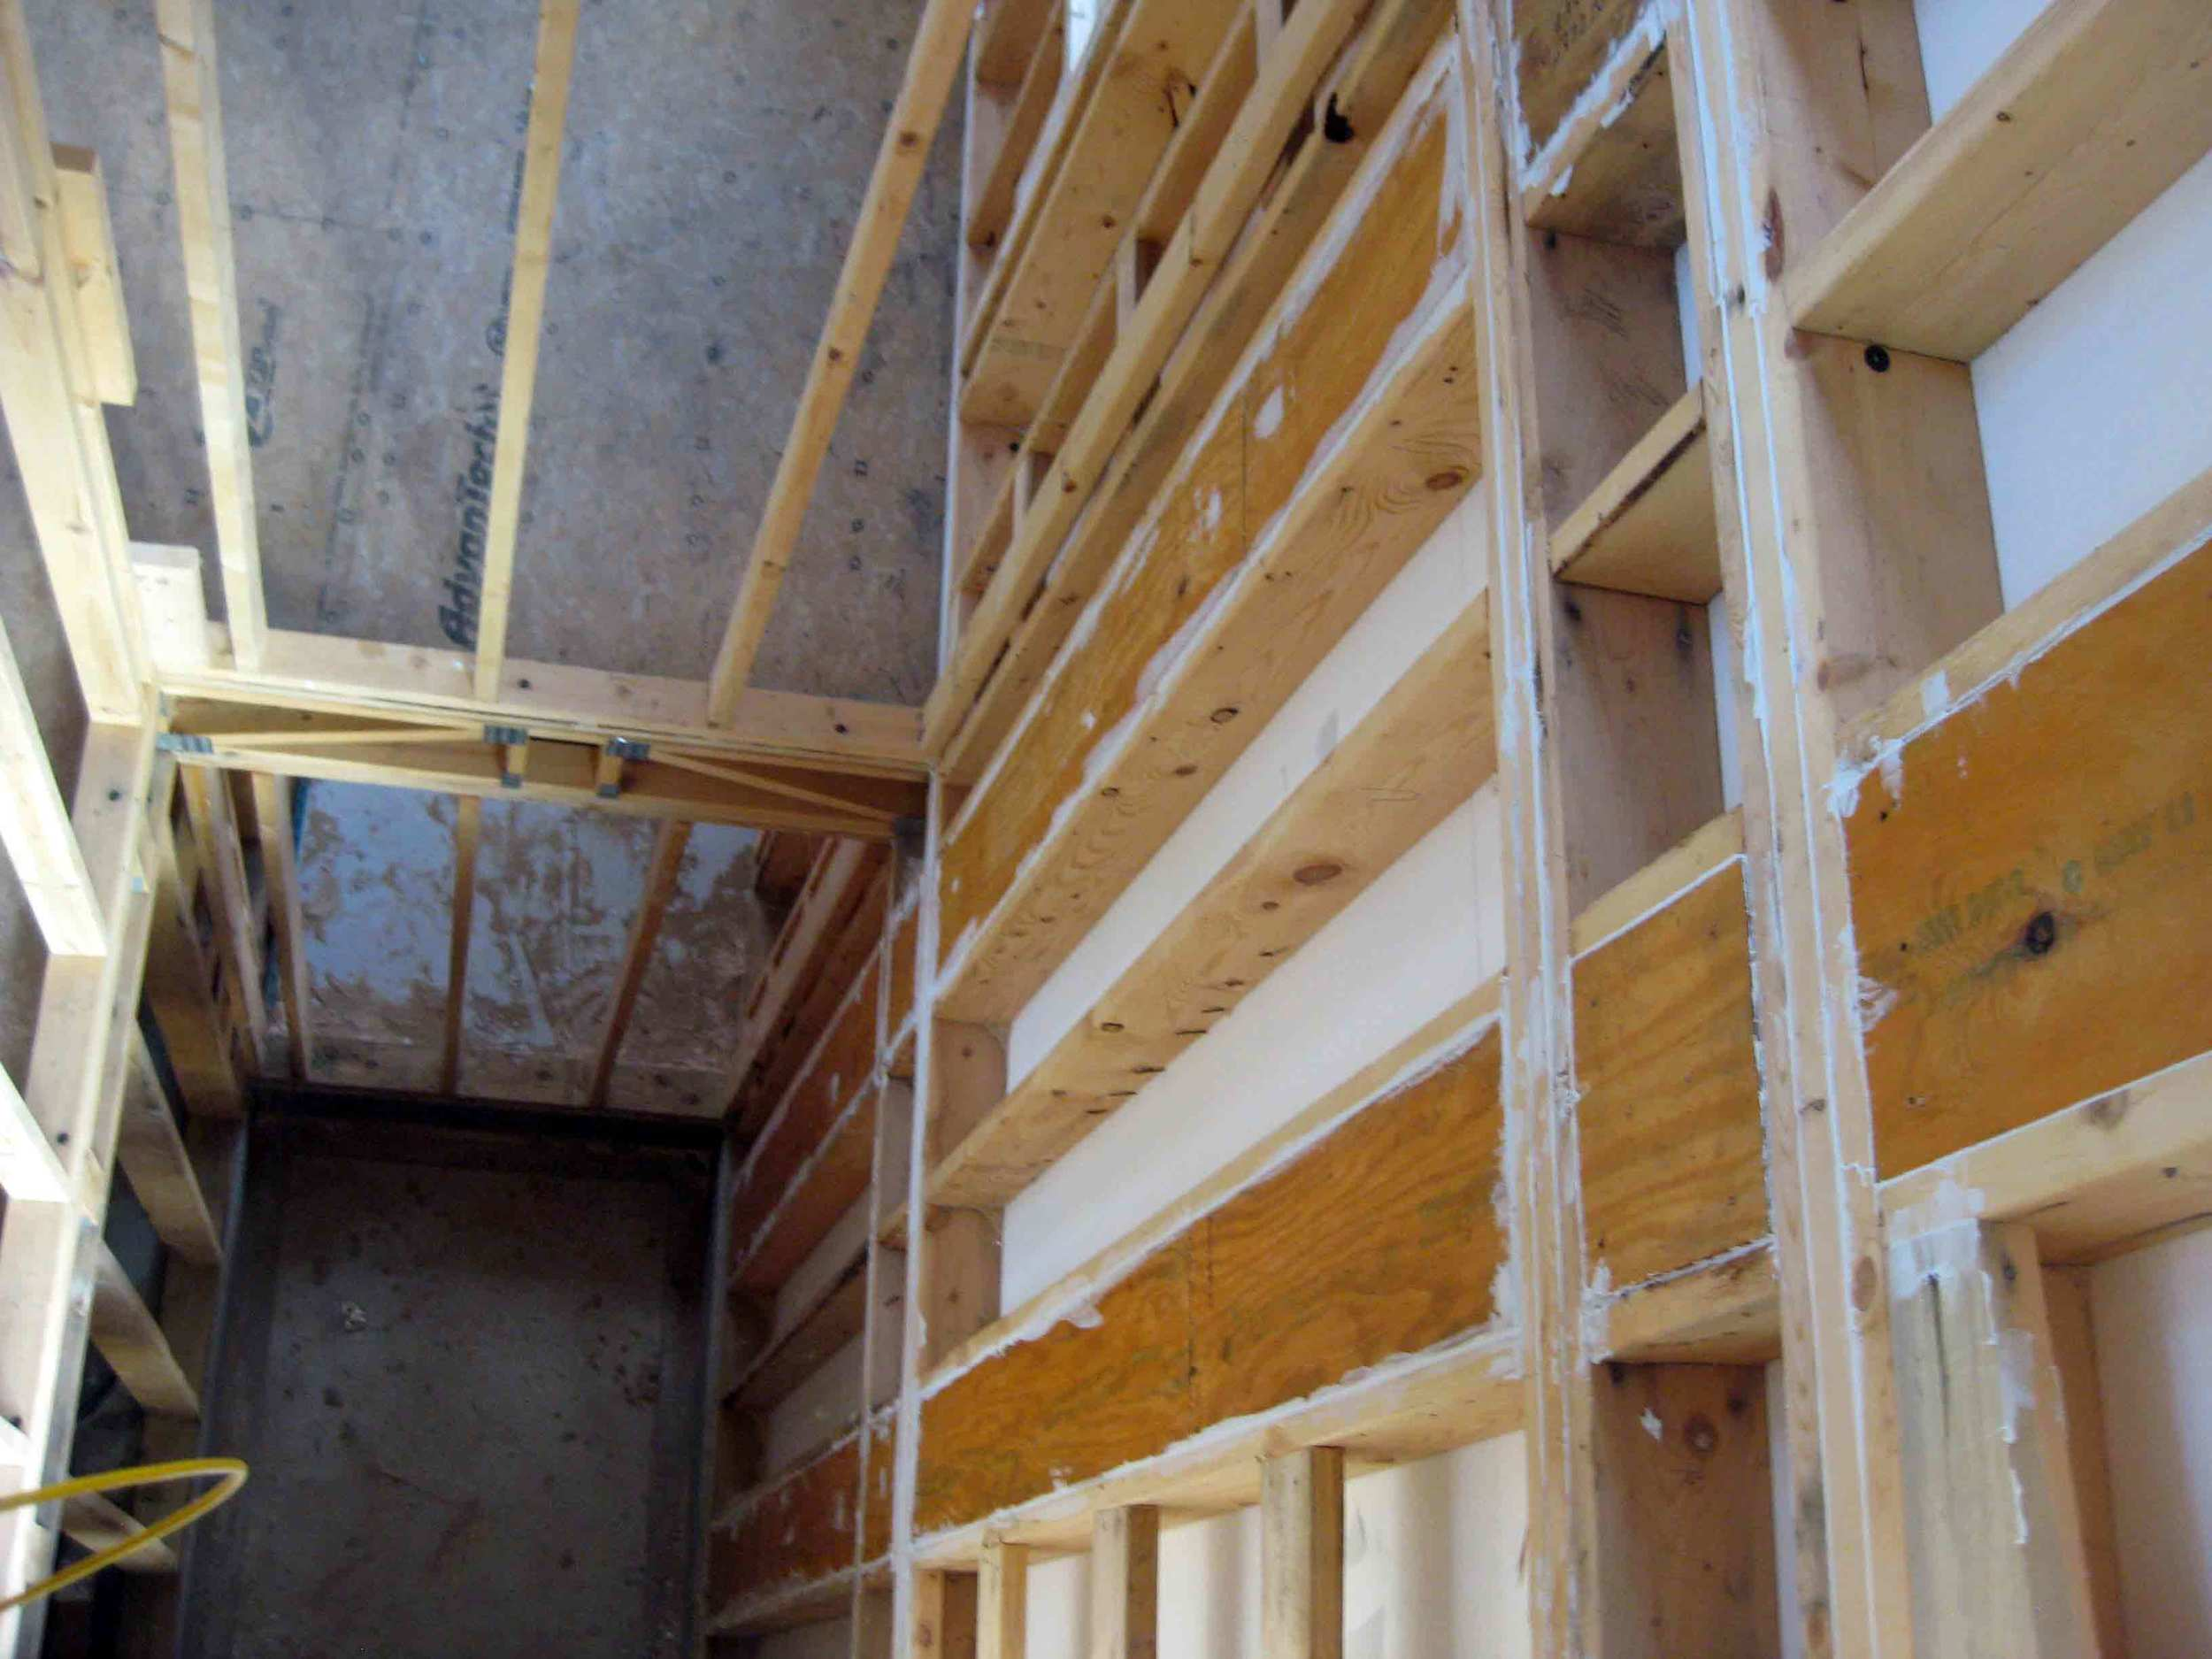 REFER TO FINAL APPROVED LAYOUT DRAWINGS FOR LOCATIONS OF LVL's AND ROUGH DOOR OPENINGS